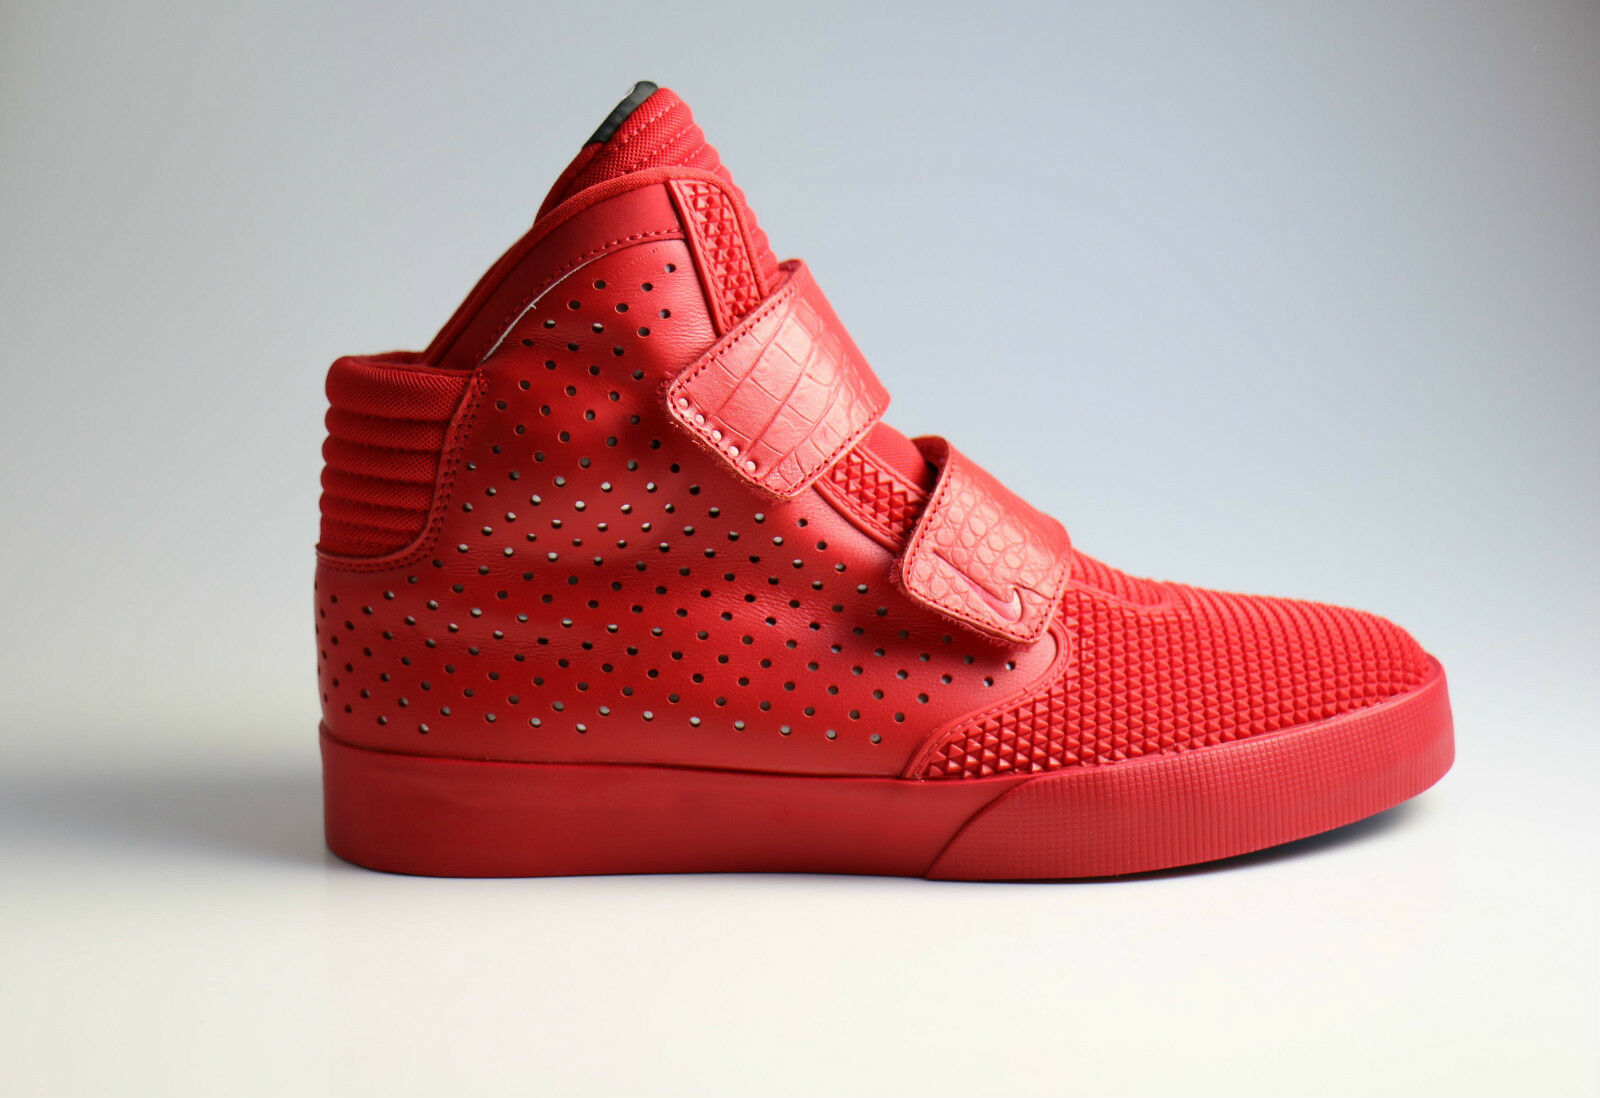 Nike flystepper 2k3 red 40 40,5 42 42,5 43 7 44 44,5 45 46 7 43 8 9 10 11 12 9,5 58e784